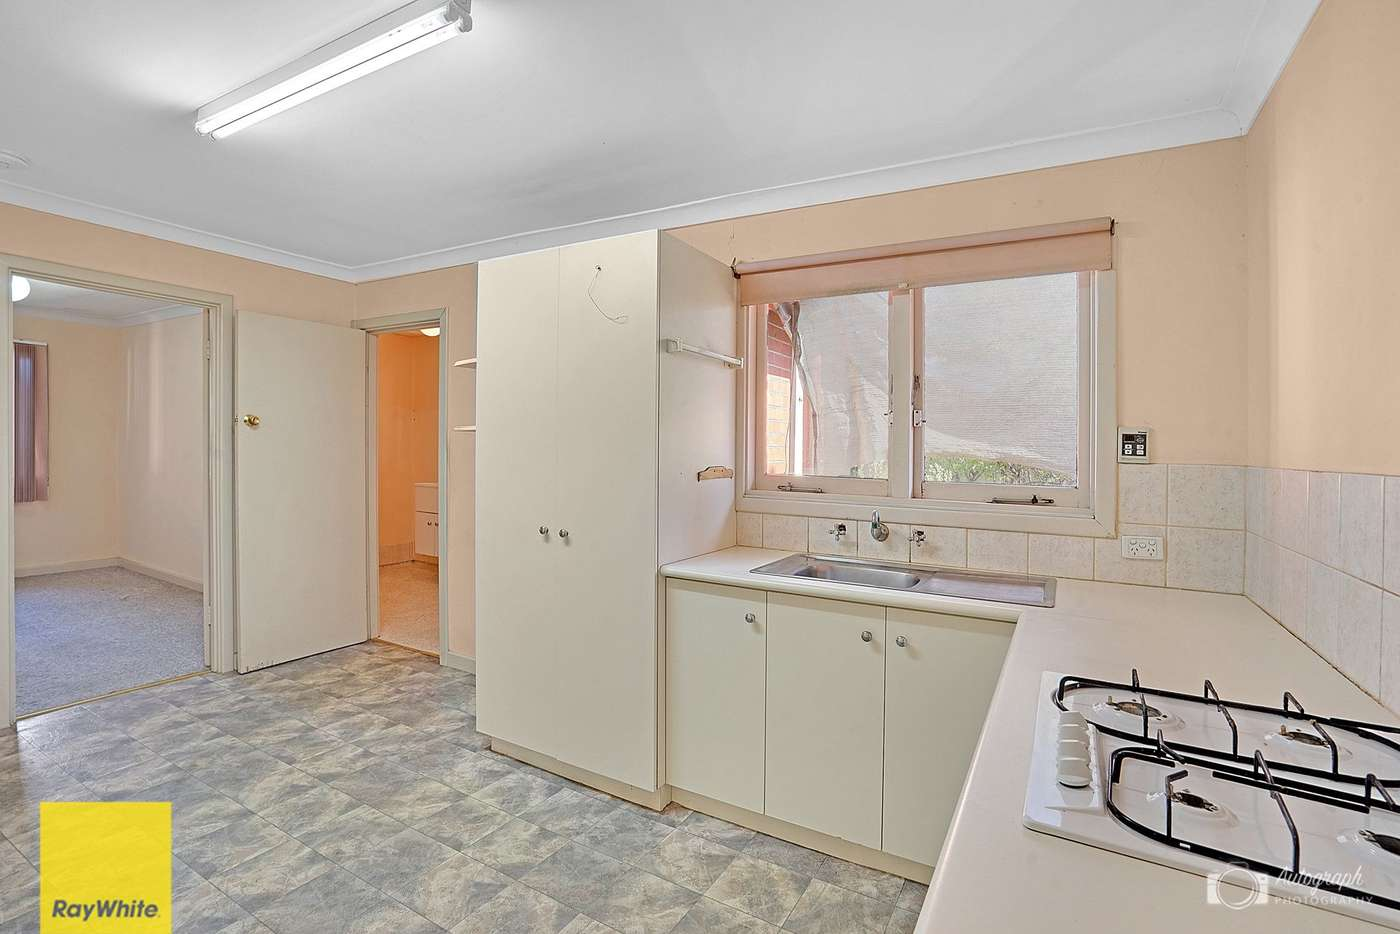 Sixth view of Homely house listing, 15A Bersted Street, Balga WA 6061